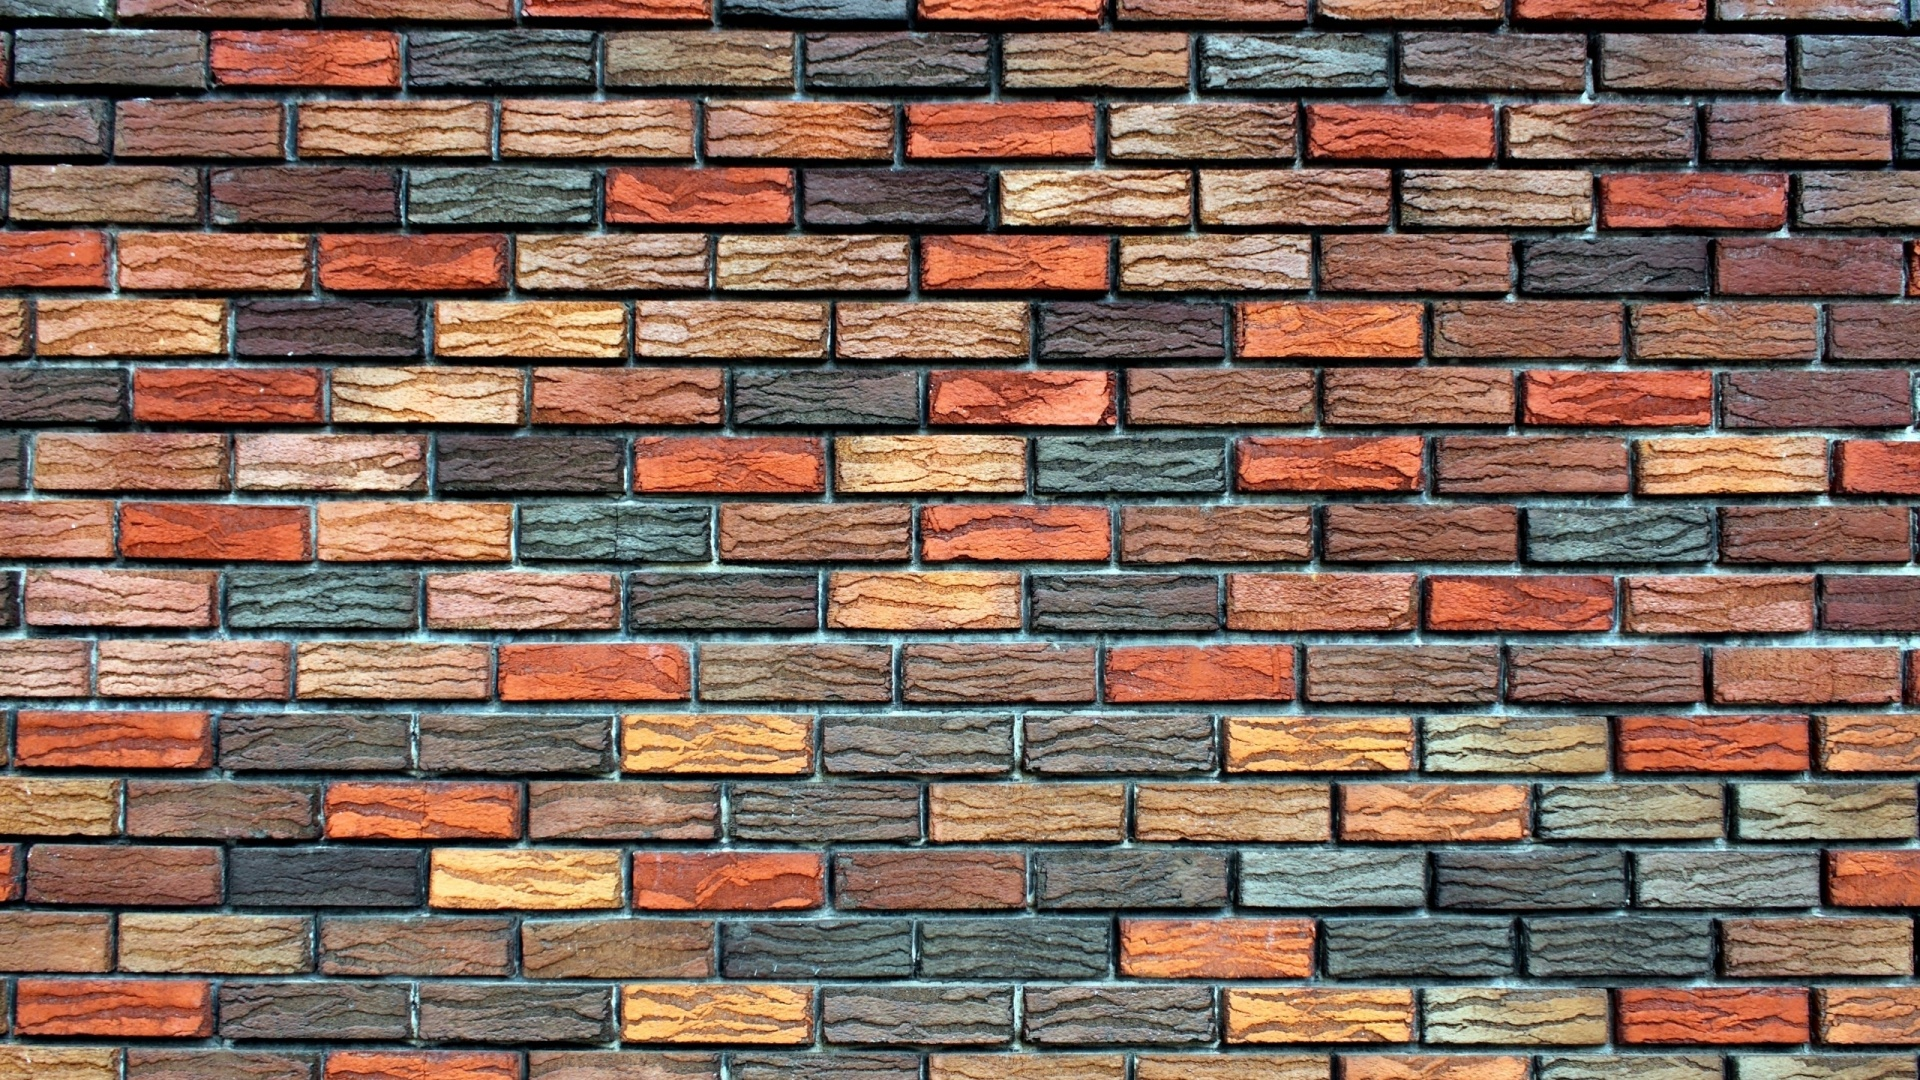 Colored bricks wall Wallpaper in 1920x1080 HD Resolutions